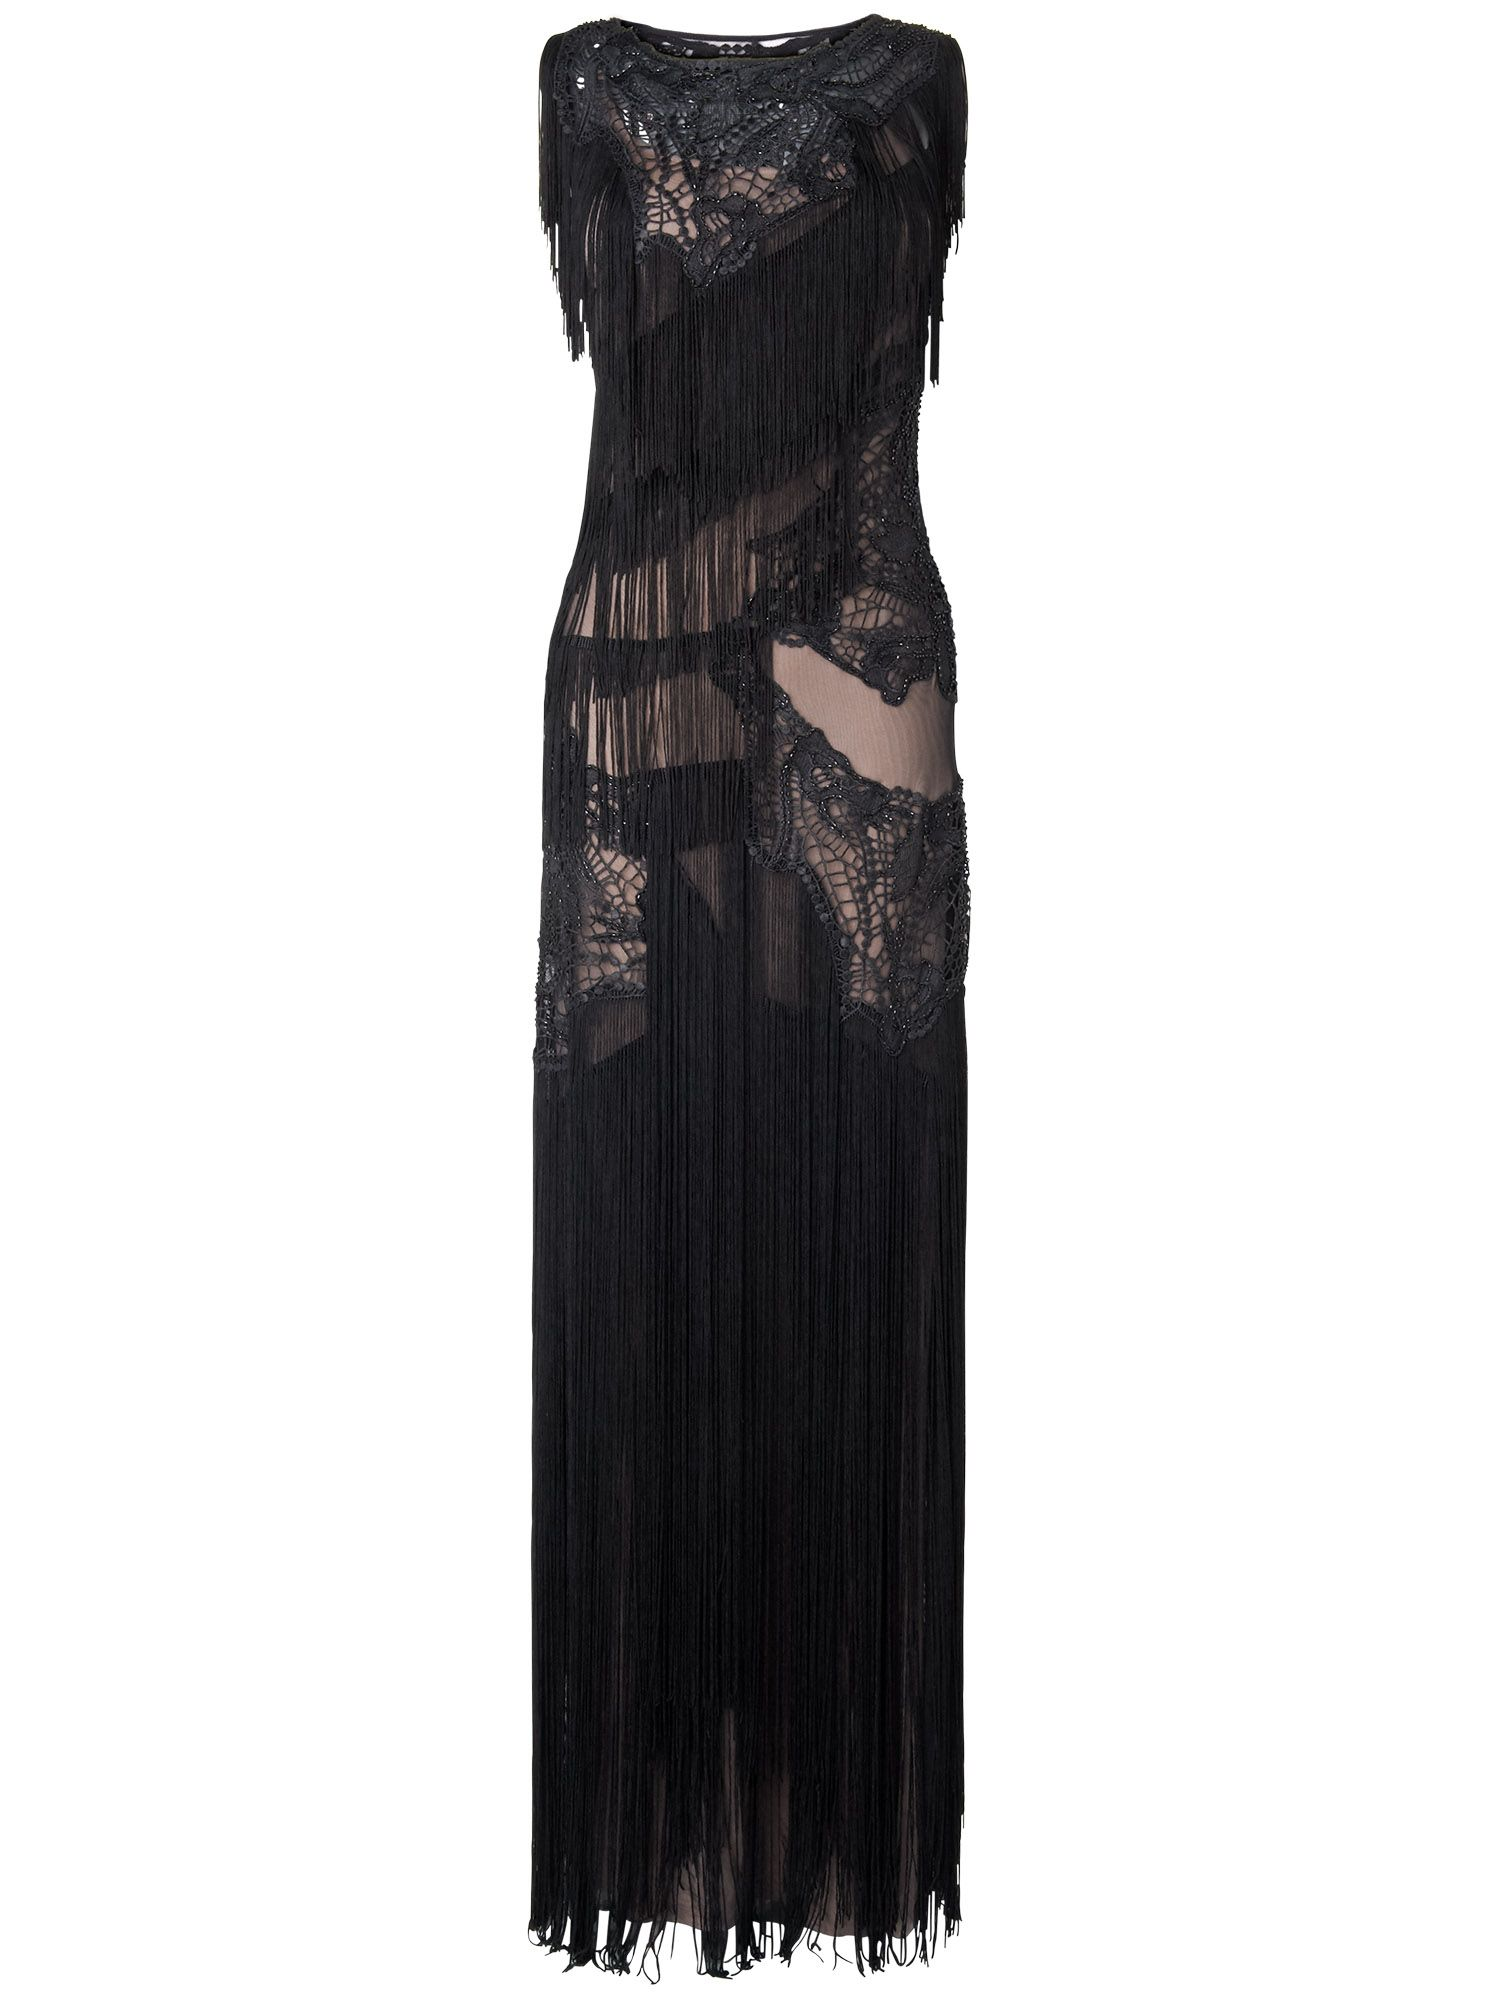 Tallulah fringed full length dress